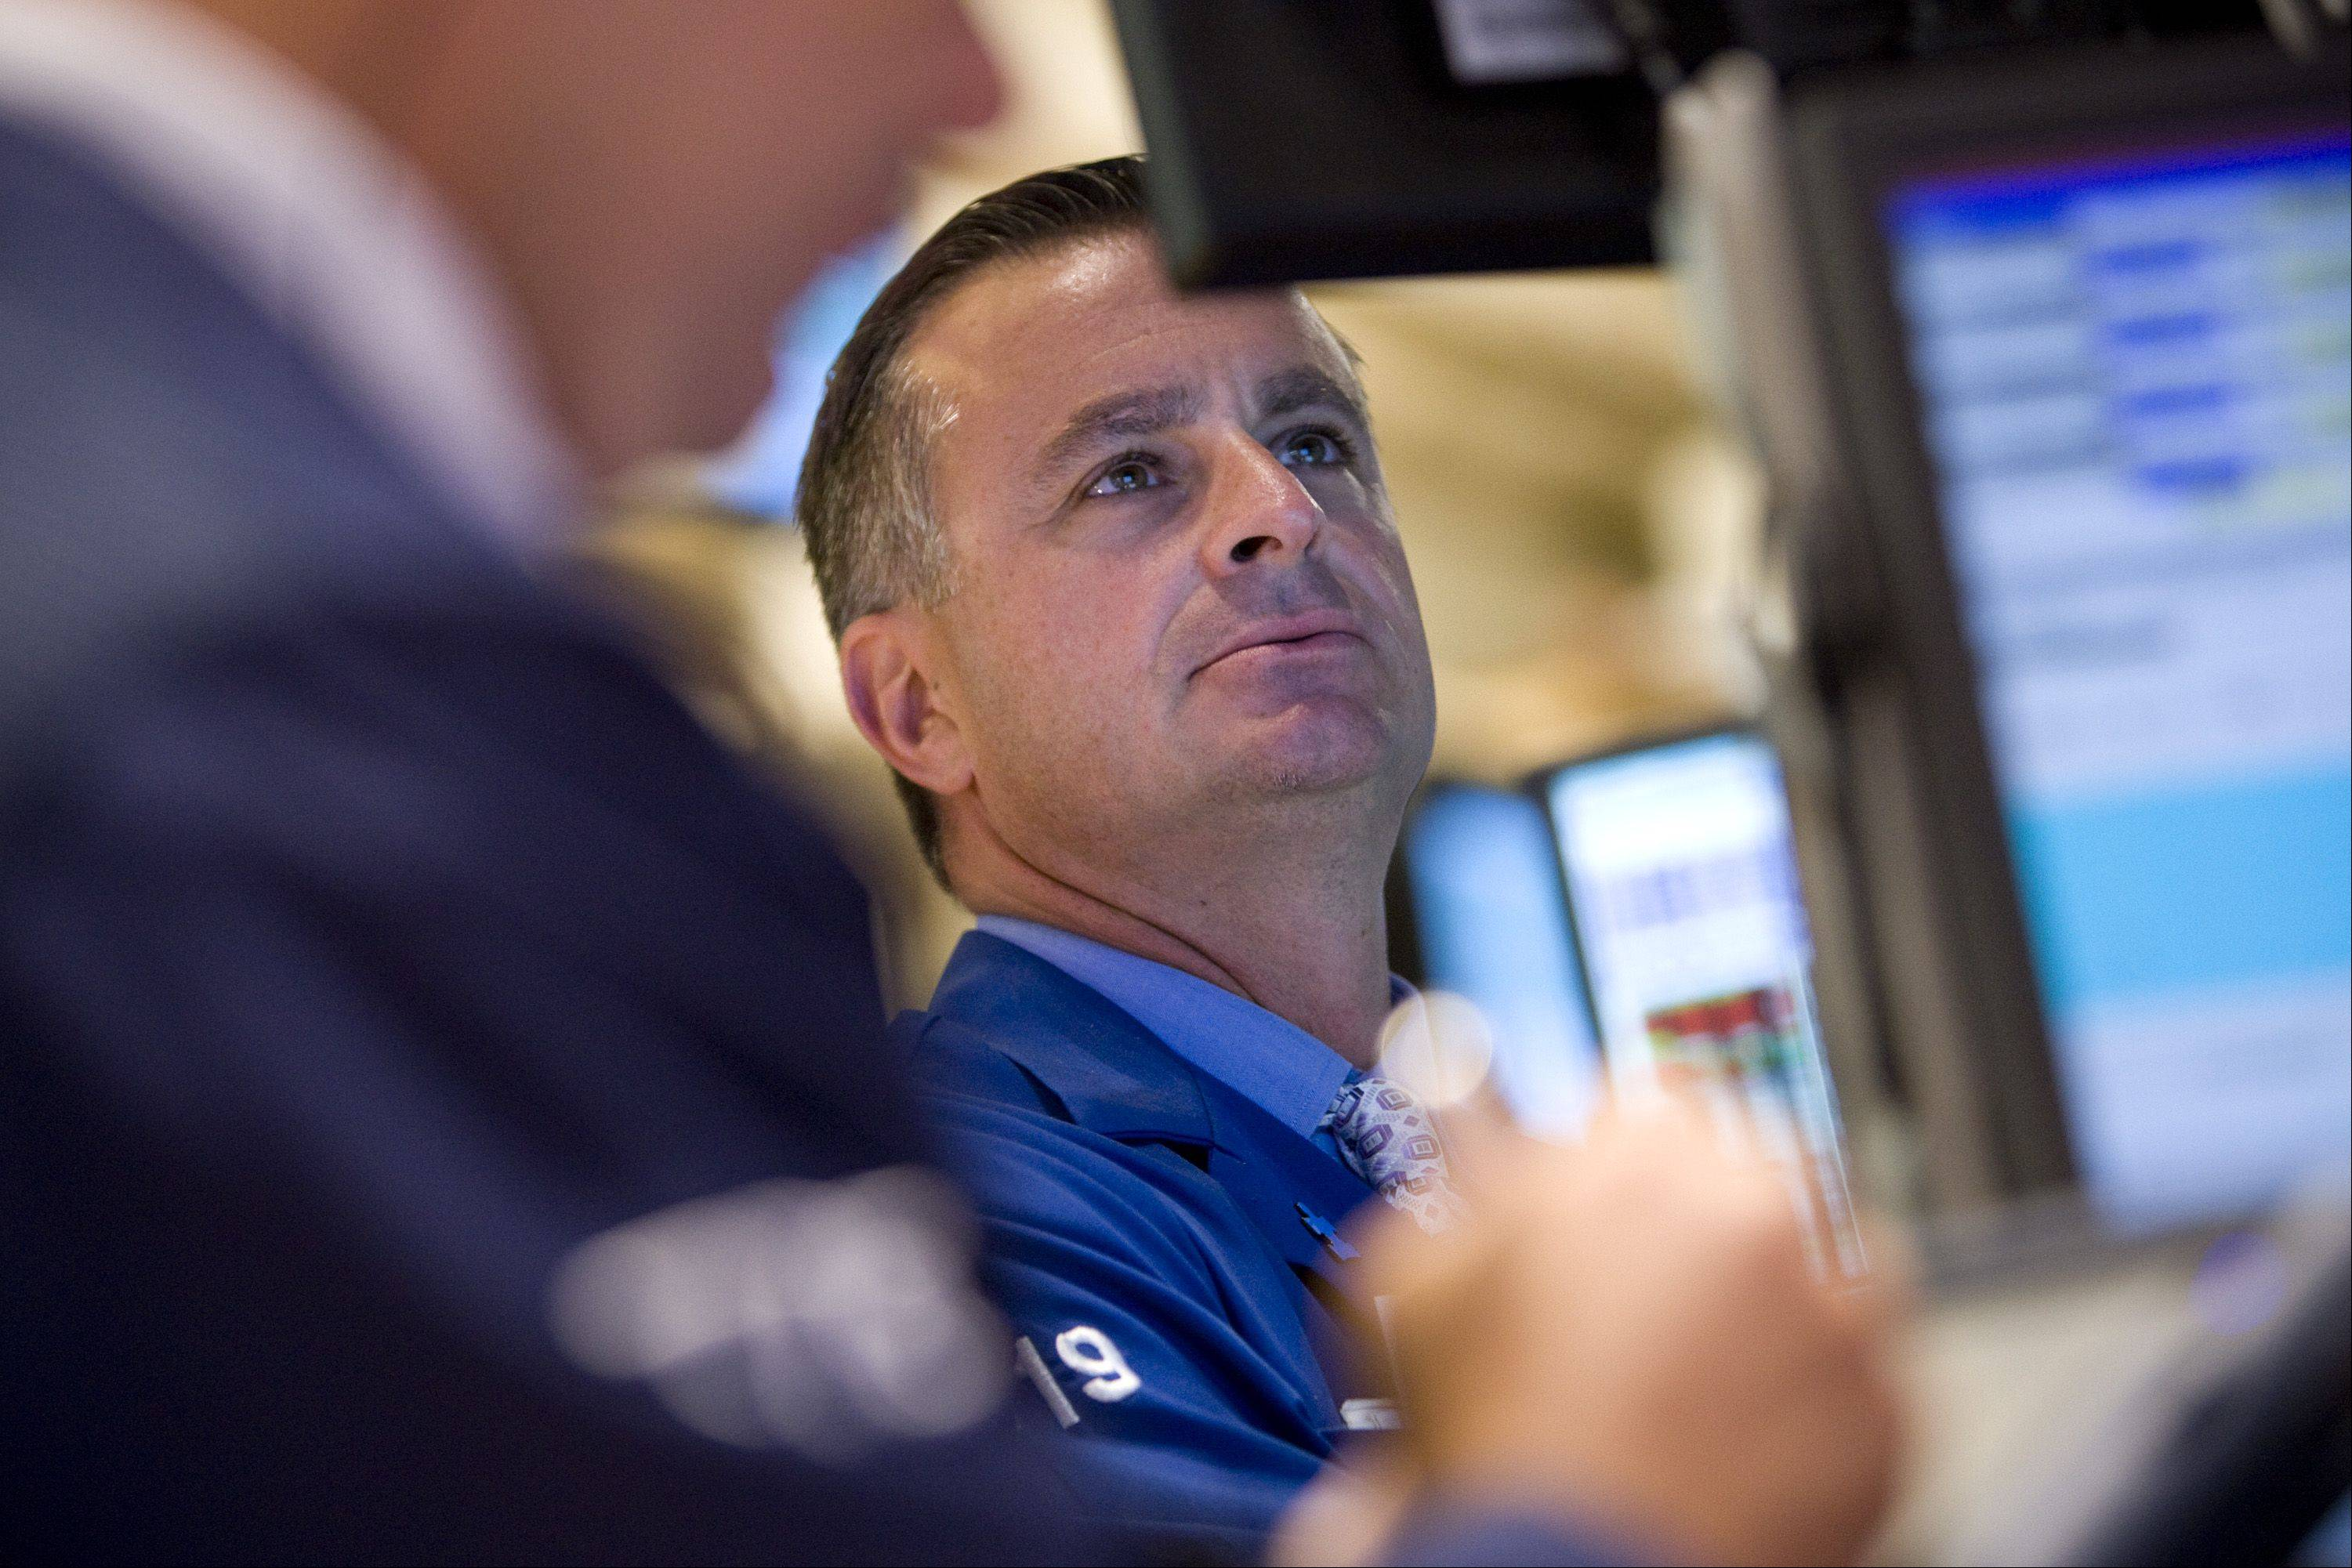 A trader works on the floor of the New York Stock Exchange (NYSE) in New York, U.S., on Monday, Aug. 8, 2011. U.S. stock futures retreated, following the biggest weekly drop in the Standard & Poor's 500 Index since 2008, amid concern that a downgrade of the nation's credit rating by S&P may worsen an economic slowdown.